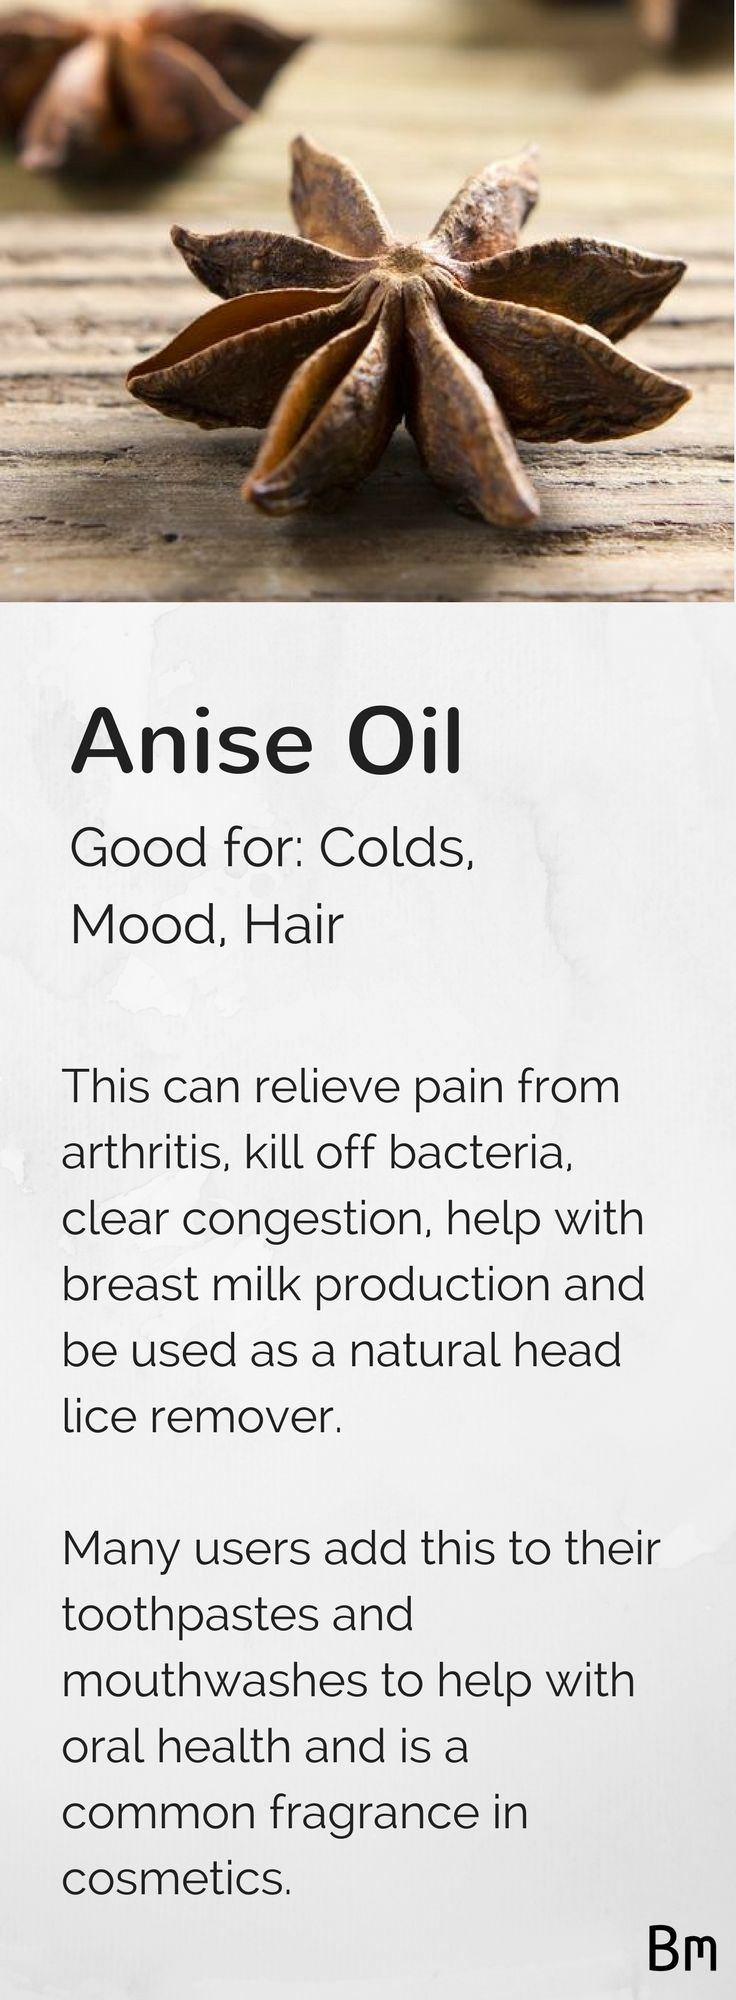 Anise oil, also known as star anise essential oil, relieves pain from arthritis, kills bacteria, clears congestion, helps with breast milk production and works great as a natural head lice remover. Add two drops to your favourite lotion or into your shampoo for an easy way to get the most out of your essential oil. Click the image to learn more about all 94 essential oils and their uses.